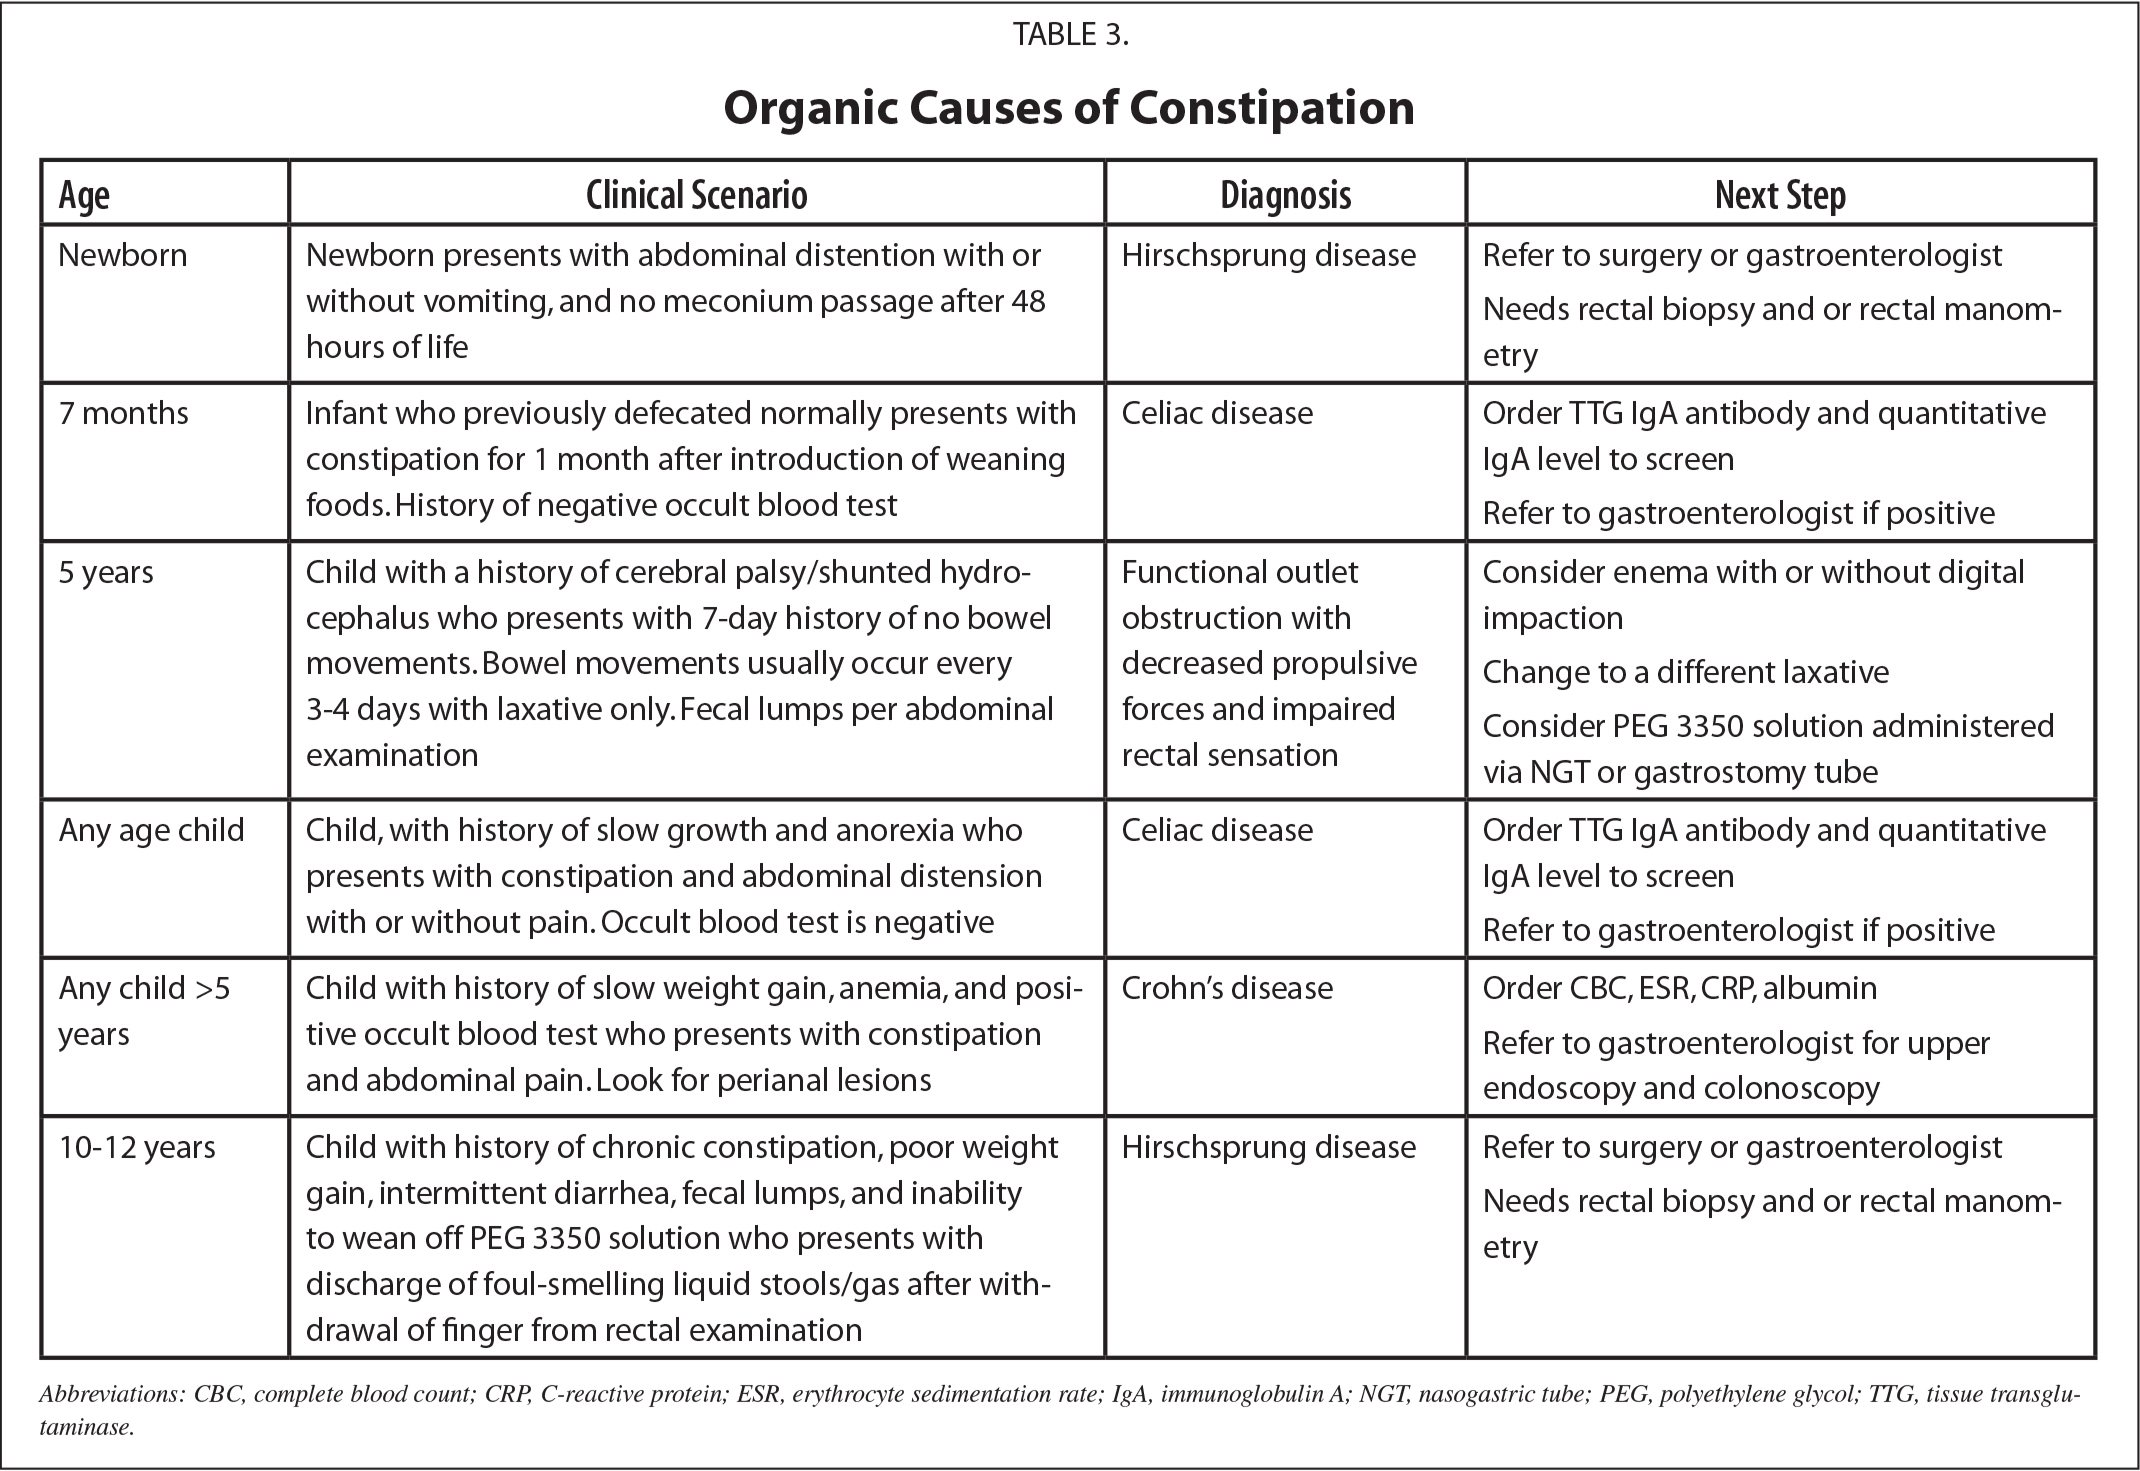 Organic Causes of Constipation